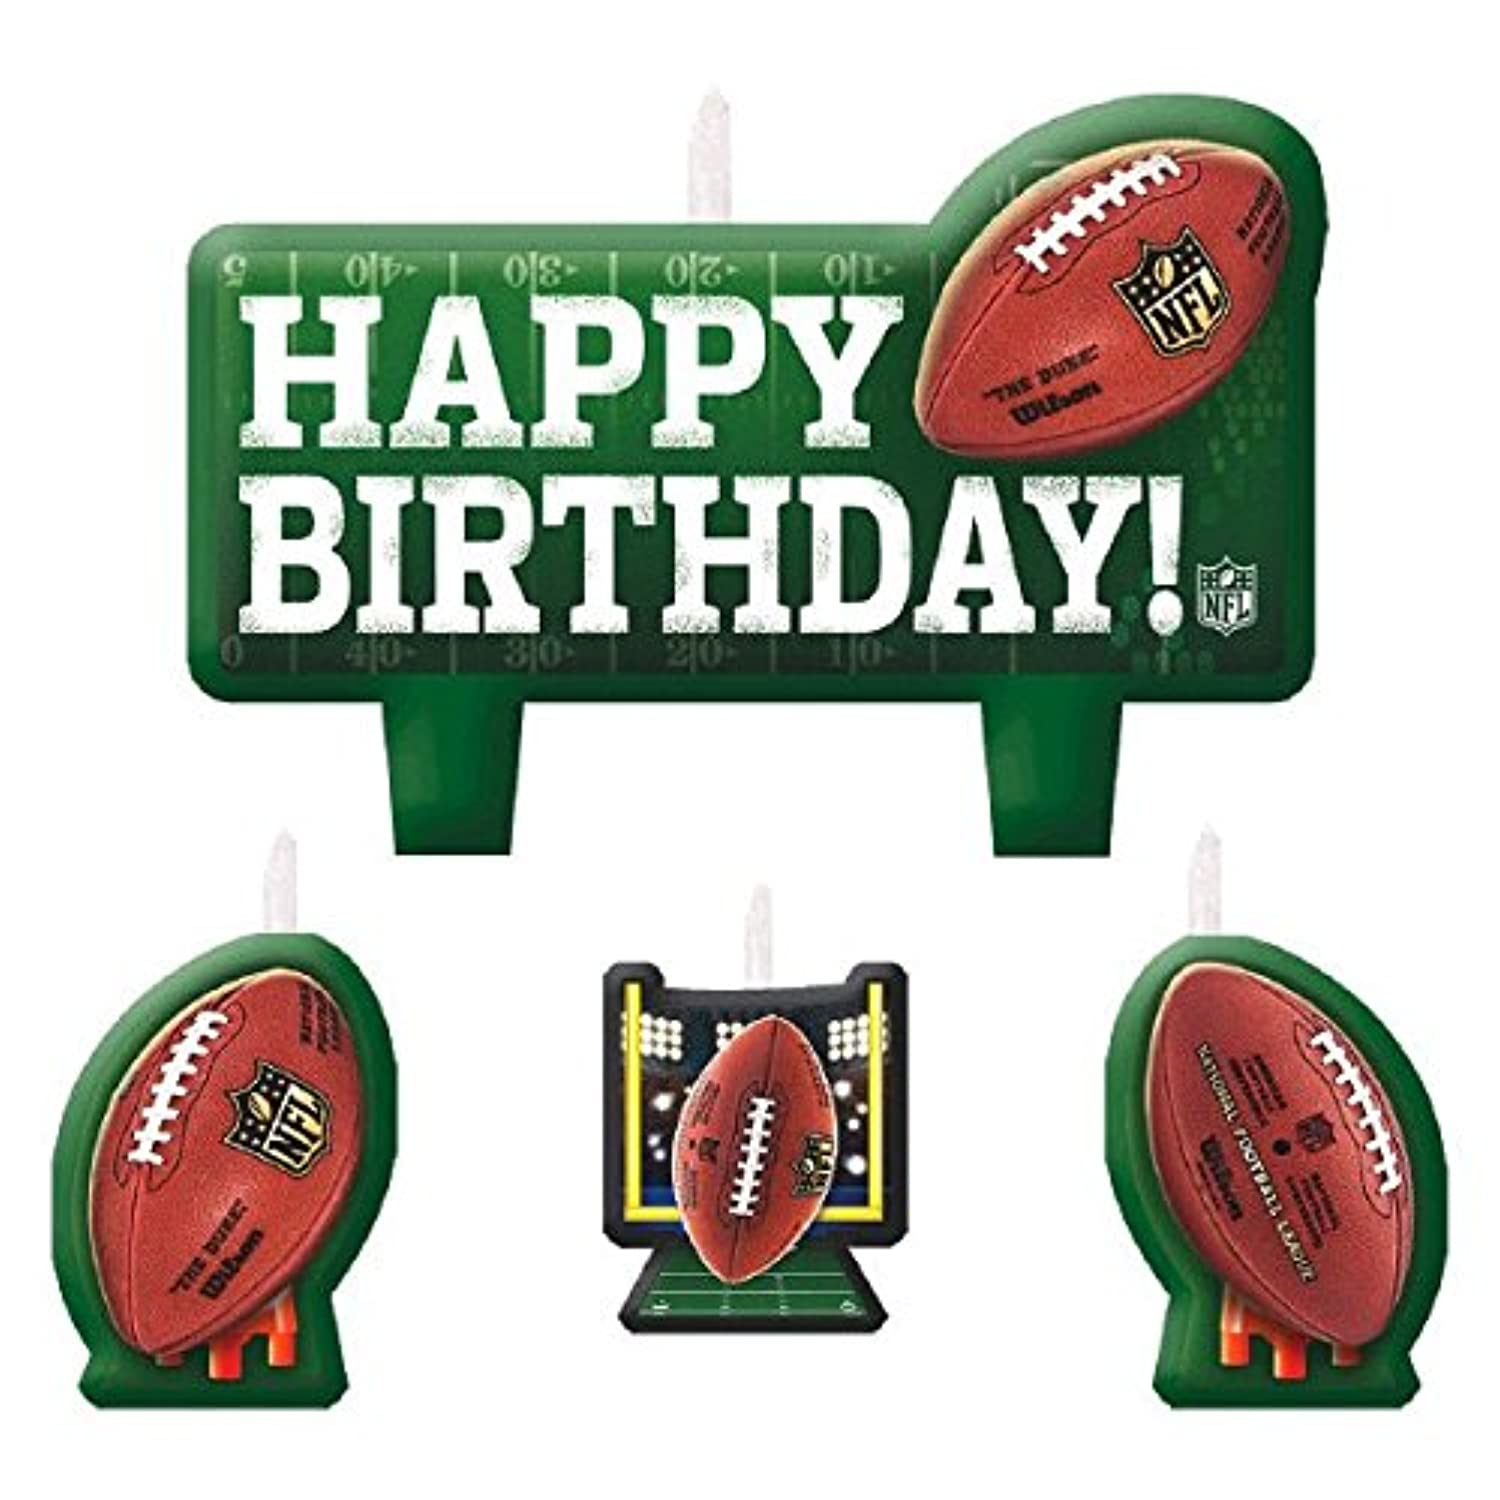 Nfl Drive Birthday Party Molded Birthday Candle Set, 4 Pieces, Made From Wax,